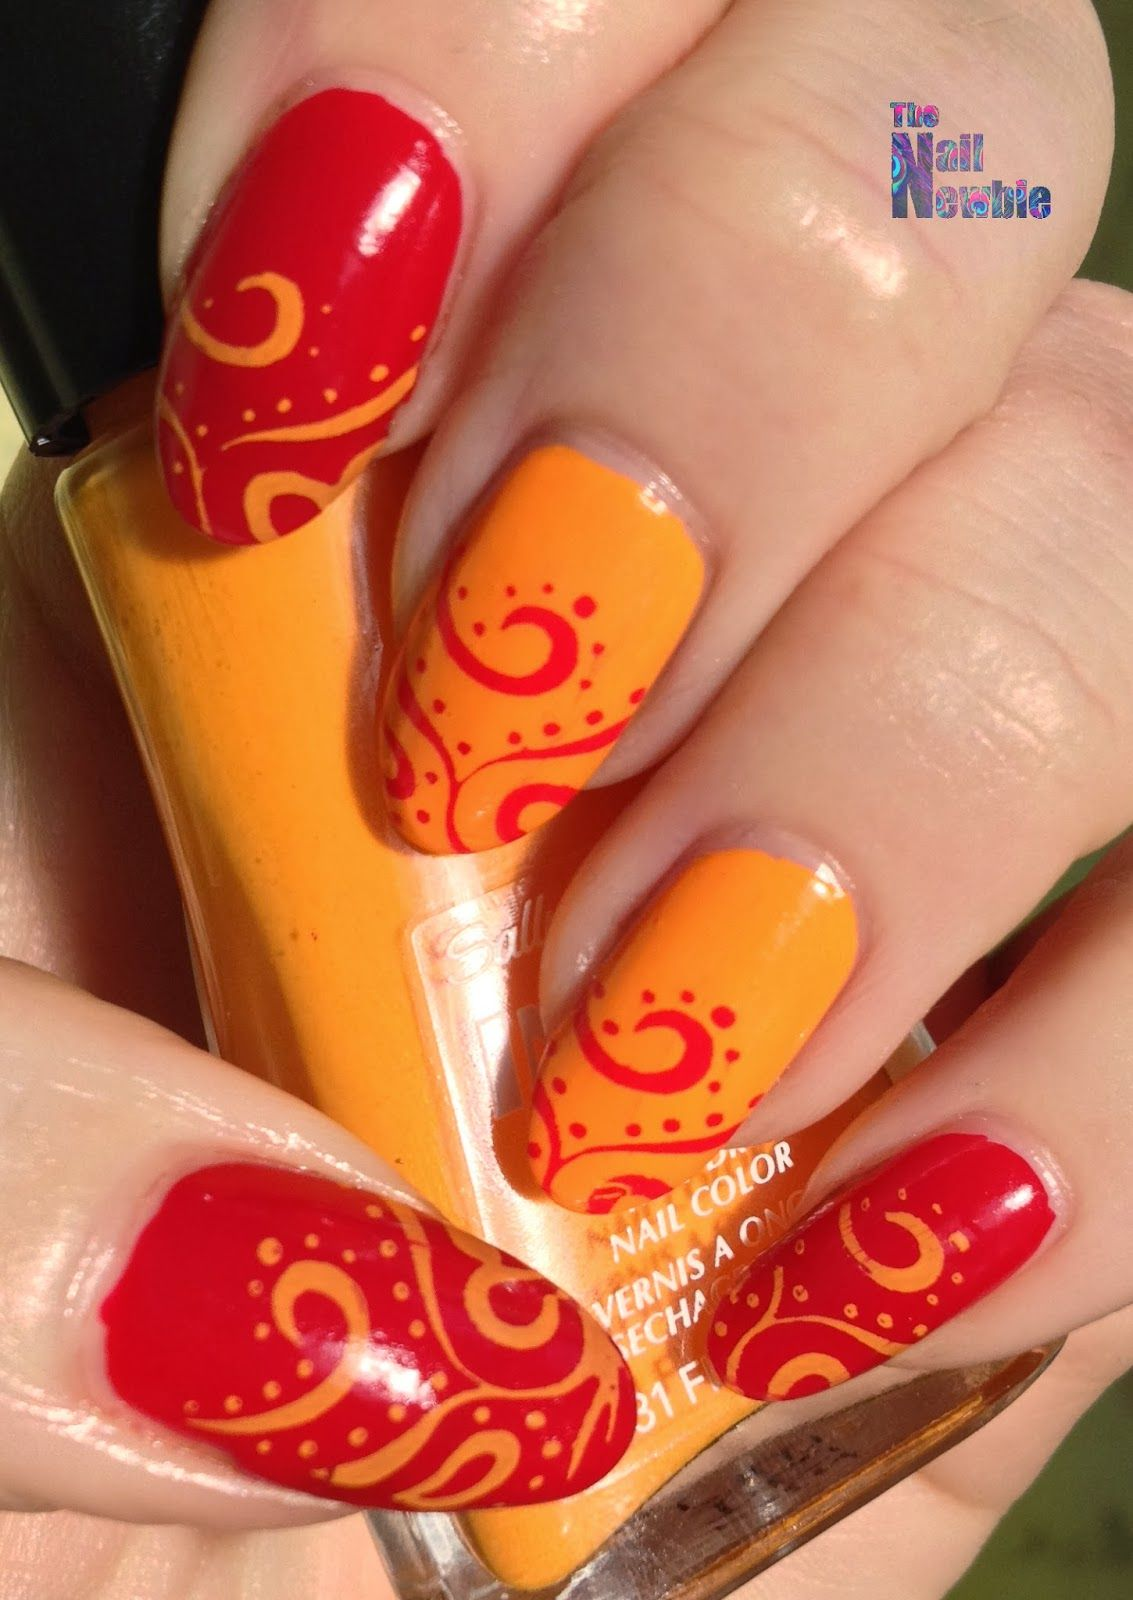 Nail Newbie Notd: Nail Newbie: Tri Polish Challenge Red, Orange And Yellow